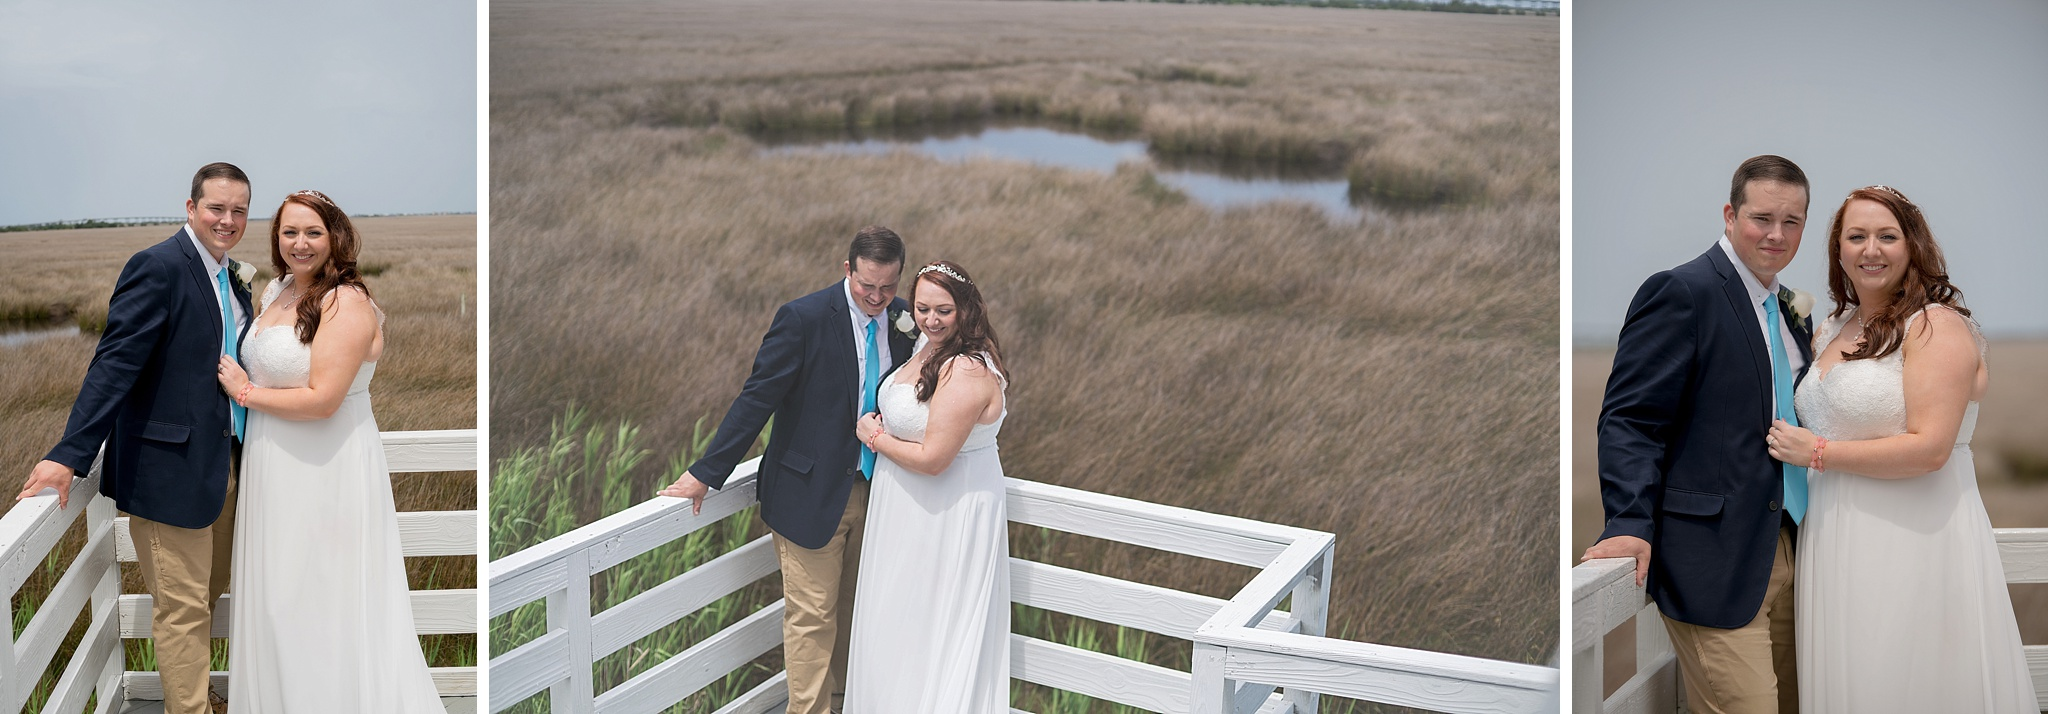 Manteo-NC-Wedding-Photographer-138.jpg